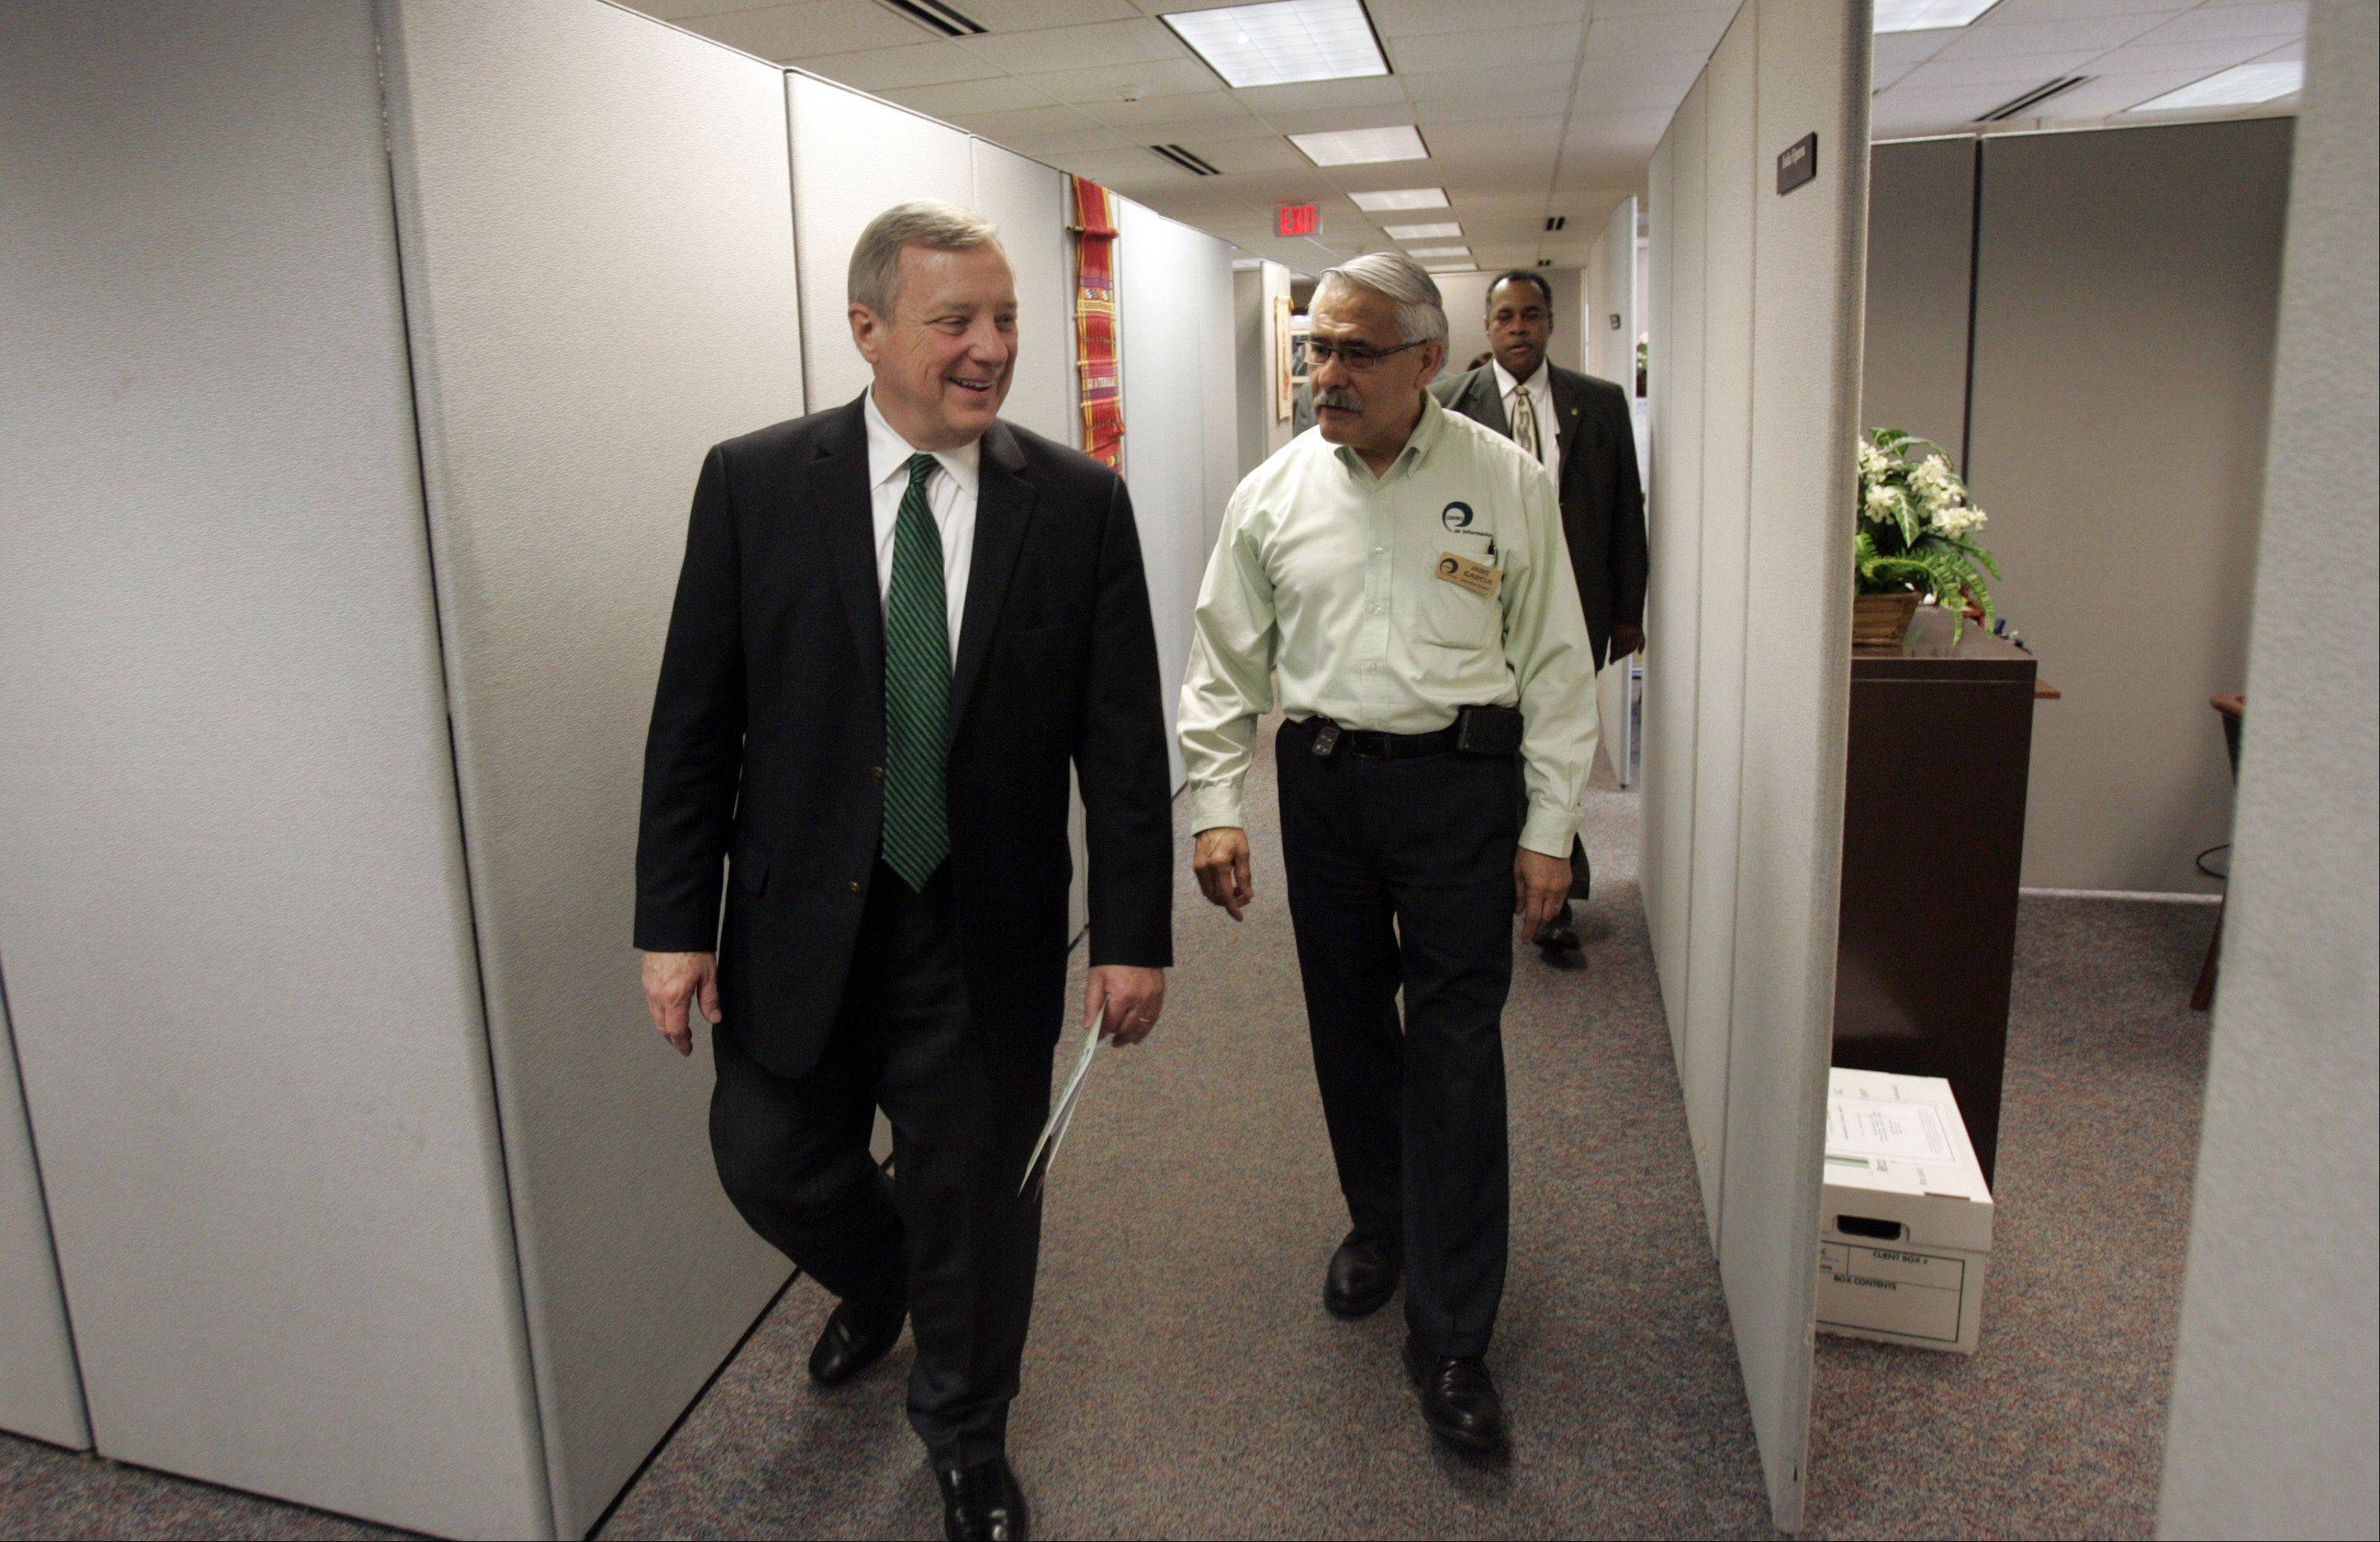 Jaime Garcia, executive director of Centro de Informacion, leads Sen. Dick Durbin on a tour prior to Durbin talking about comprehensive immigration reform to community leaders Tuesday in Elgin.